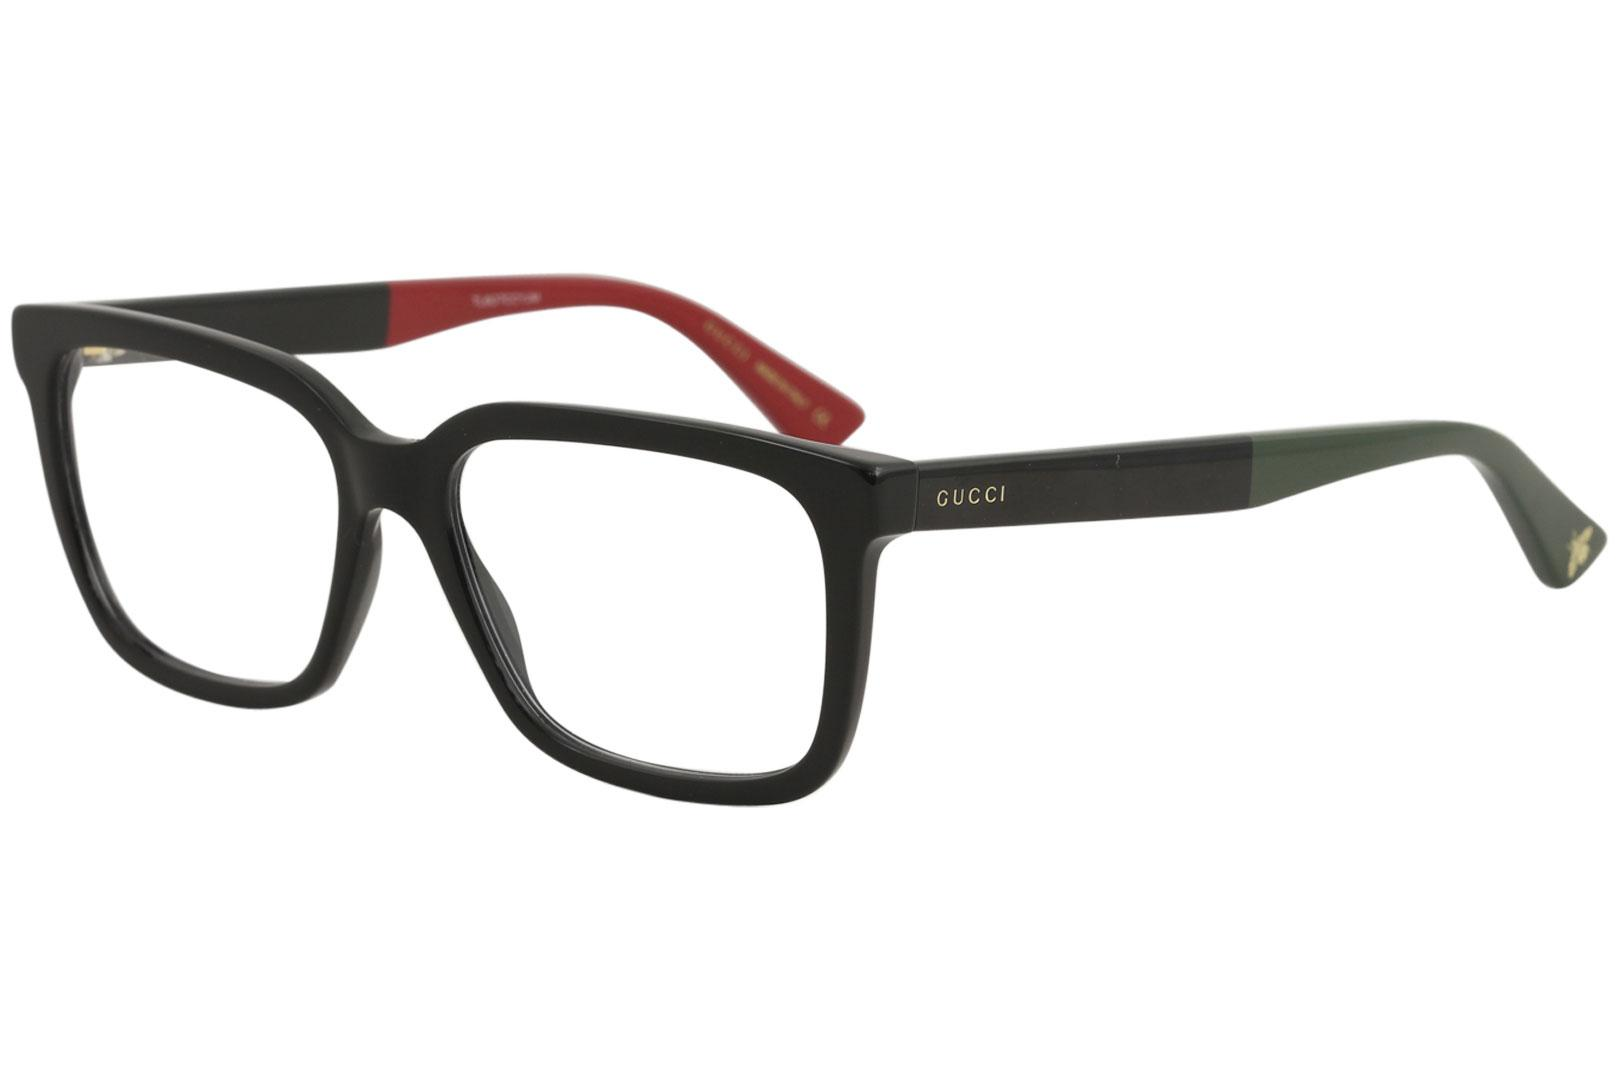 9ff320abcdd Enchanting Gucci Glasses Frames For Men Gift - Frames Ideas Handmade ...